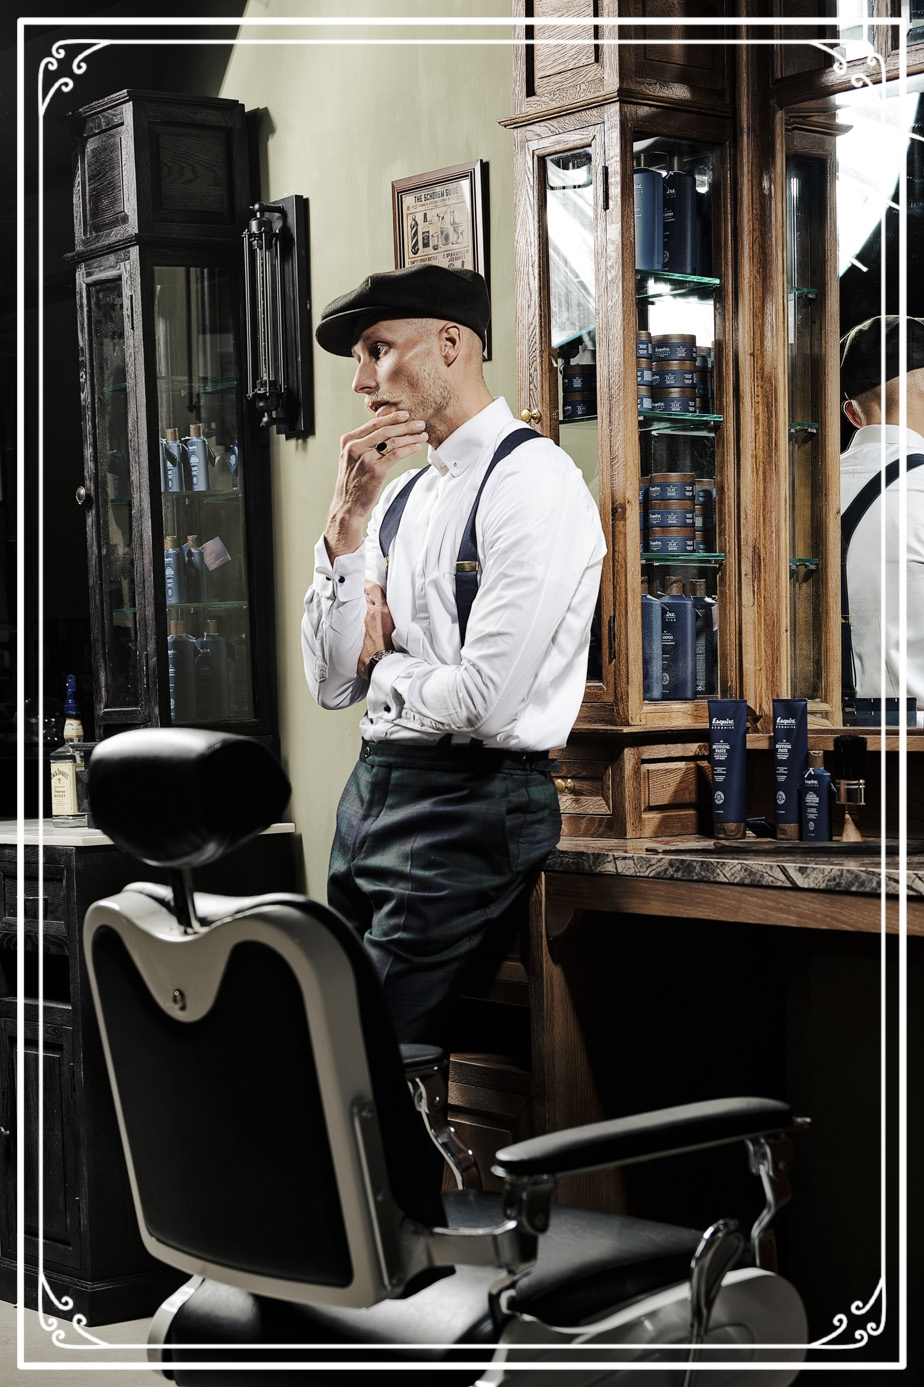 Ordinaire We Have The Quality Handcrafted Barber Furniture Based On The Furniture  From The Early Years That Will Turn ...